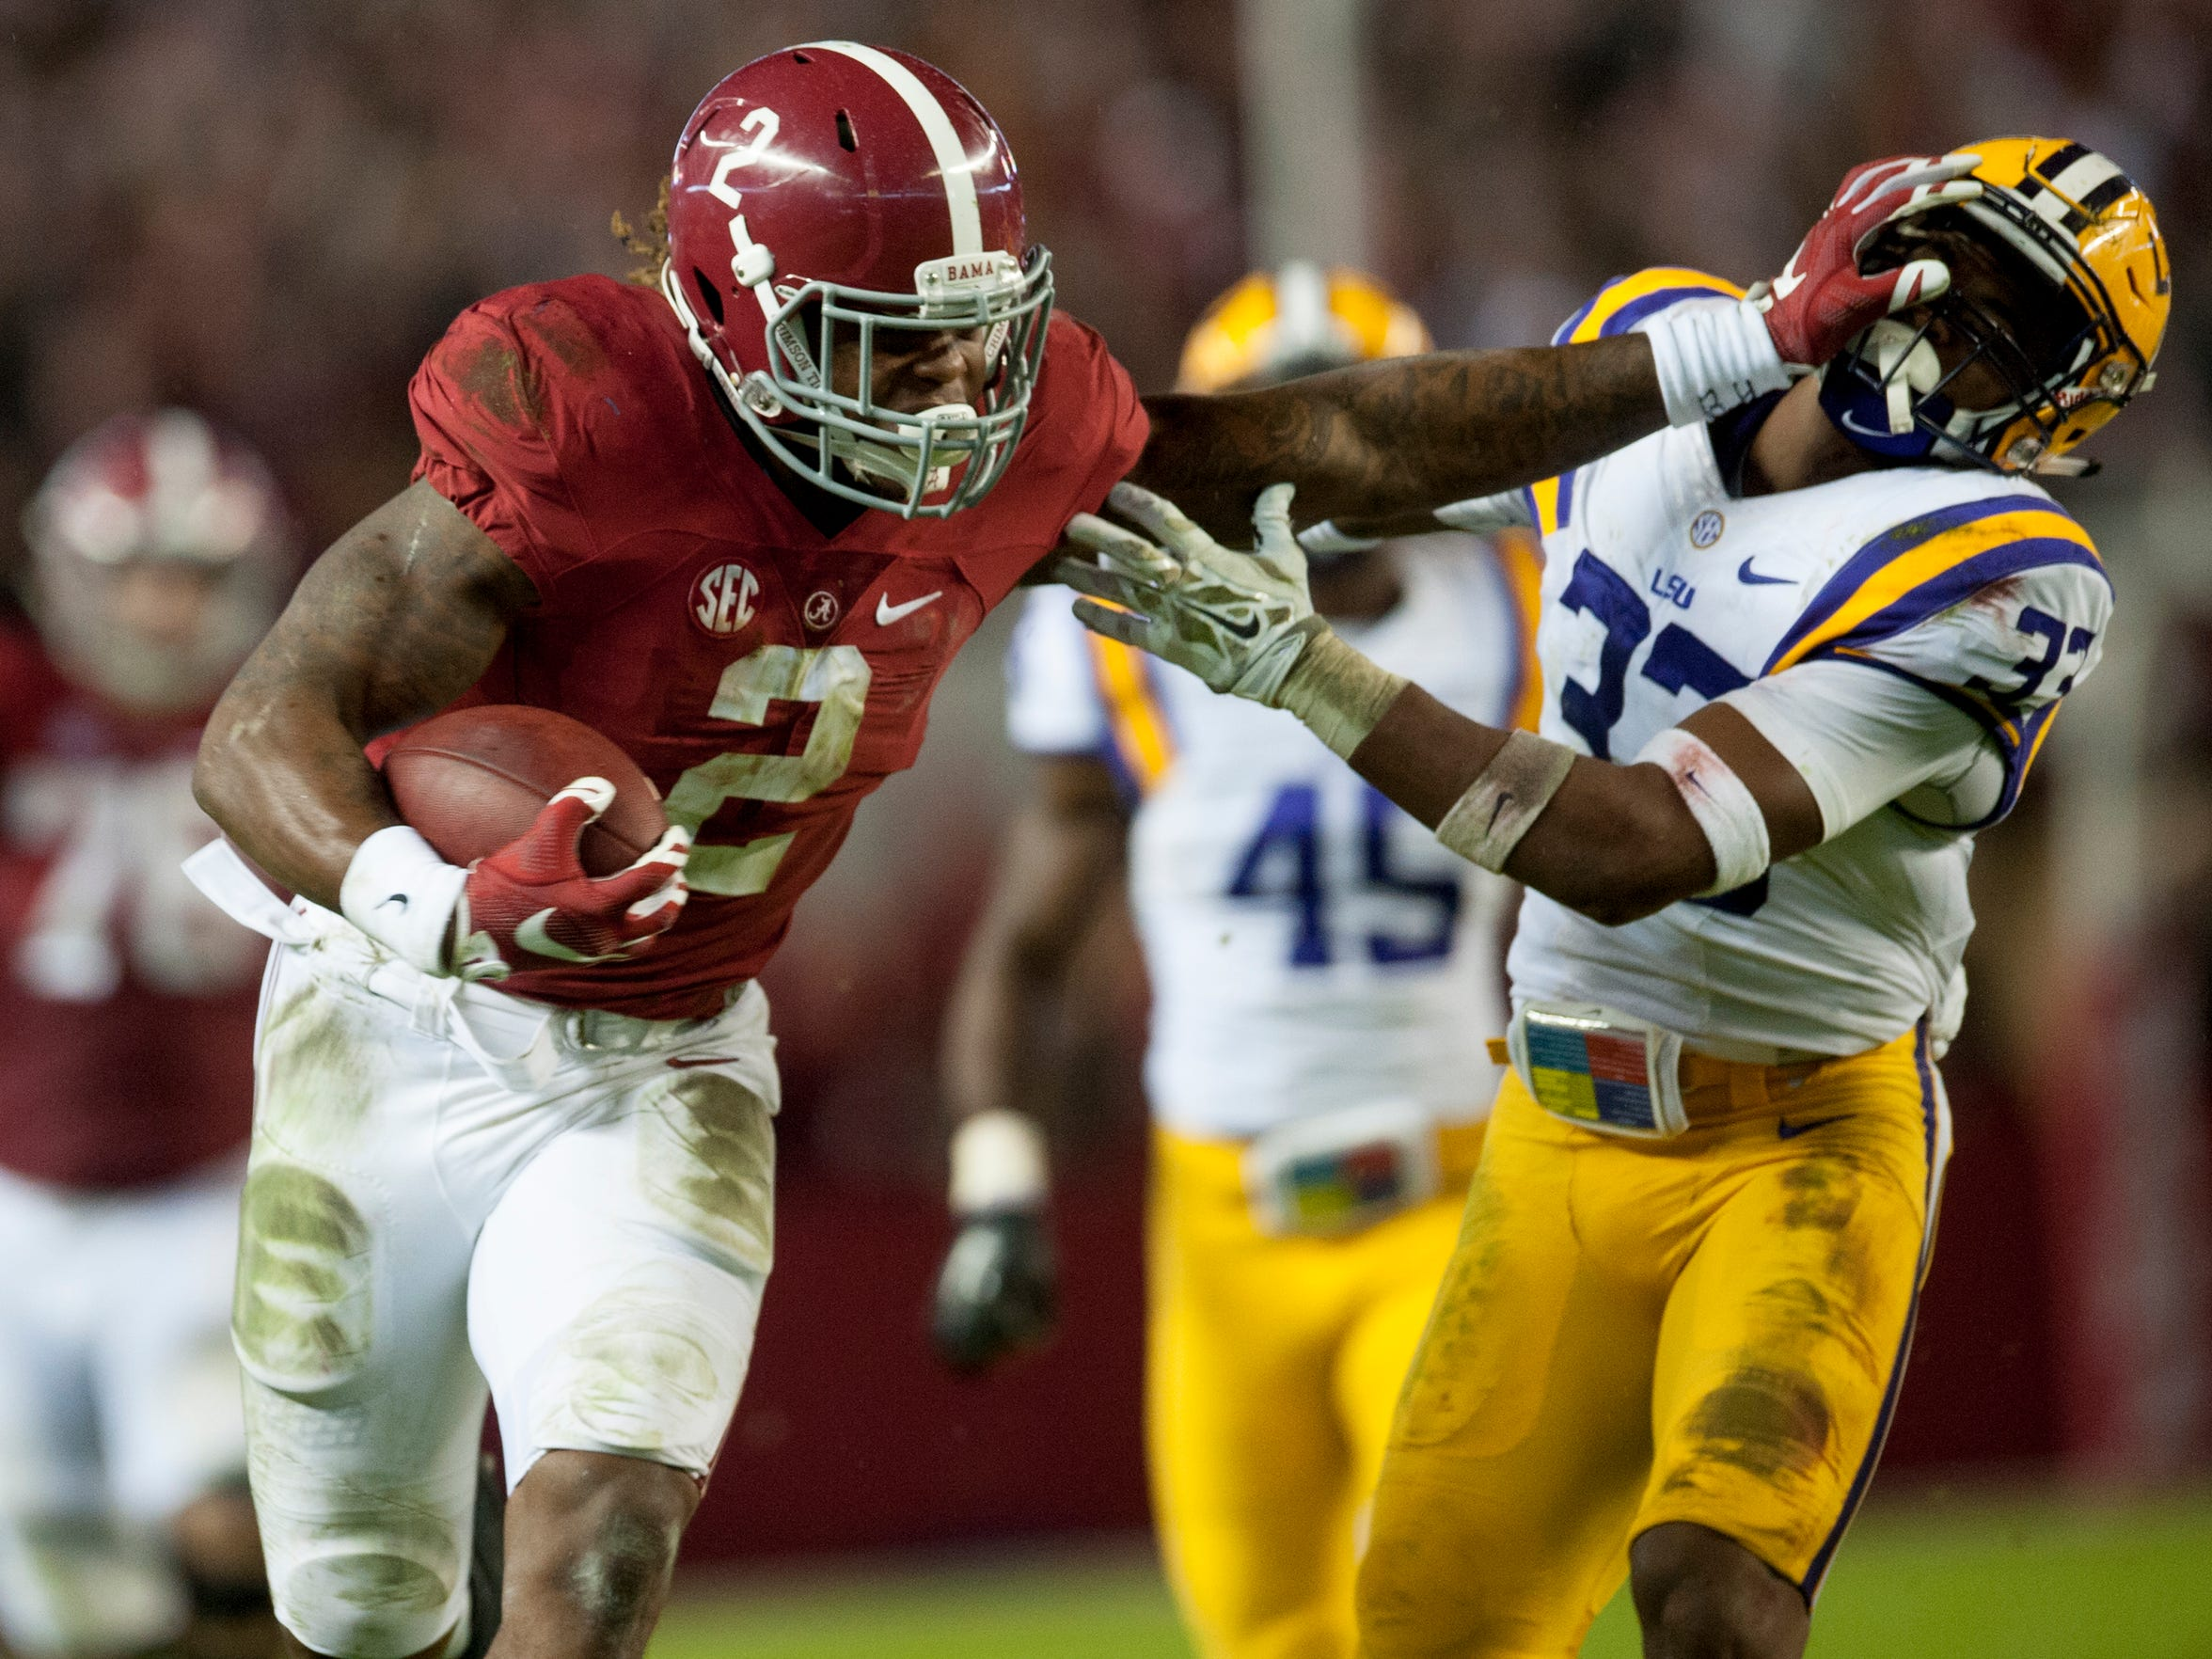 Alabama running back Derrick Henry (2) stiff arms LSU safety Jamal Adams (33) on a long gainer in the second quarter at Bryant-Denny Stadium in Tuscaloosa, Ala. on Saturday November 7, 2015. (Mickey Welsh / Montgomery Advertiser)